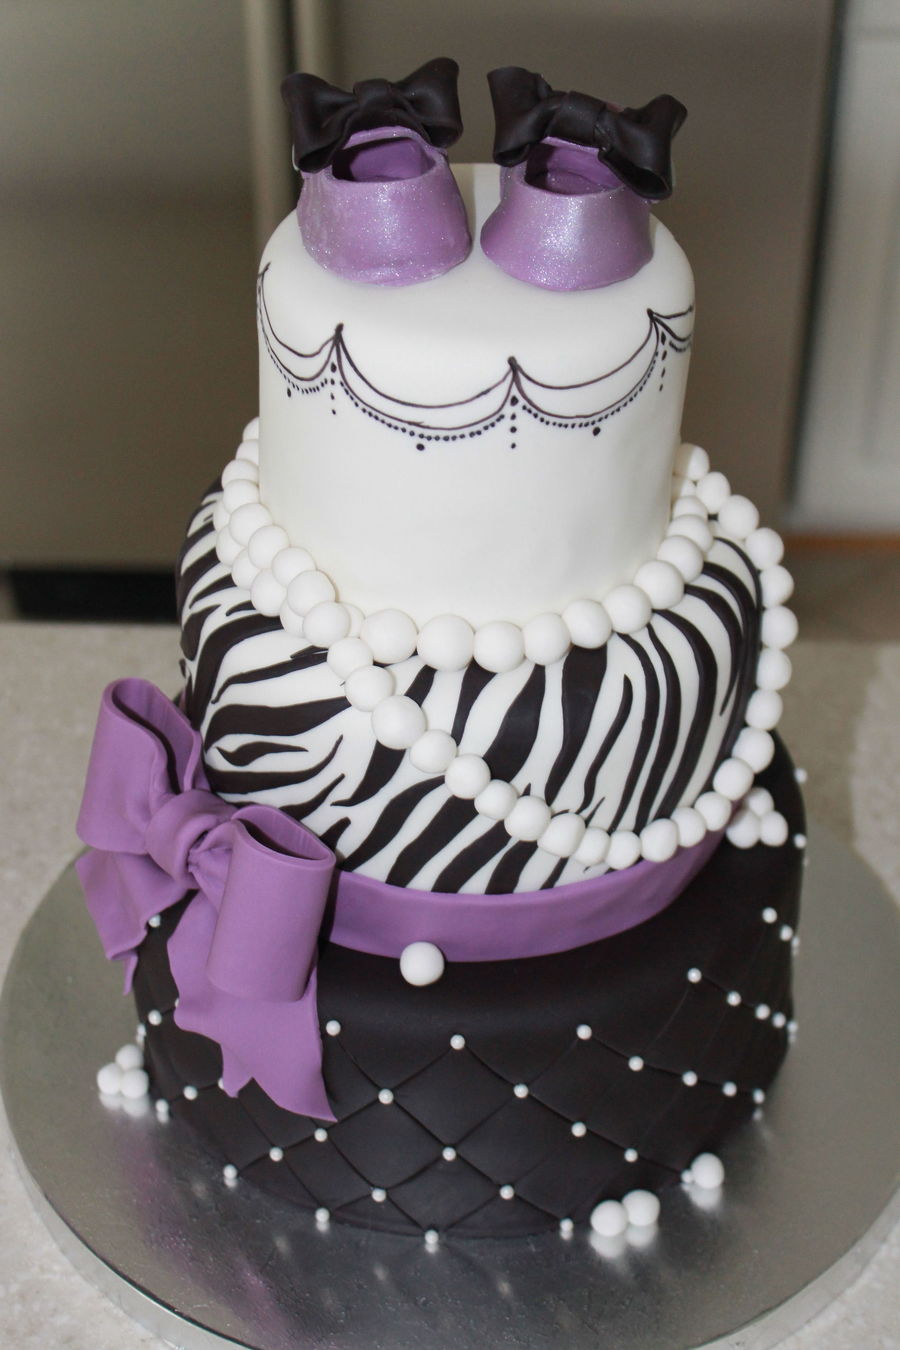 Zebra Purple Black And White Glamour Baby Shower Cakeone Of My Favorites